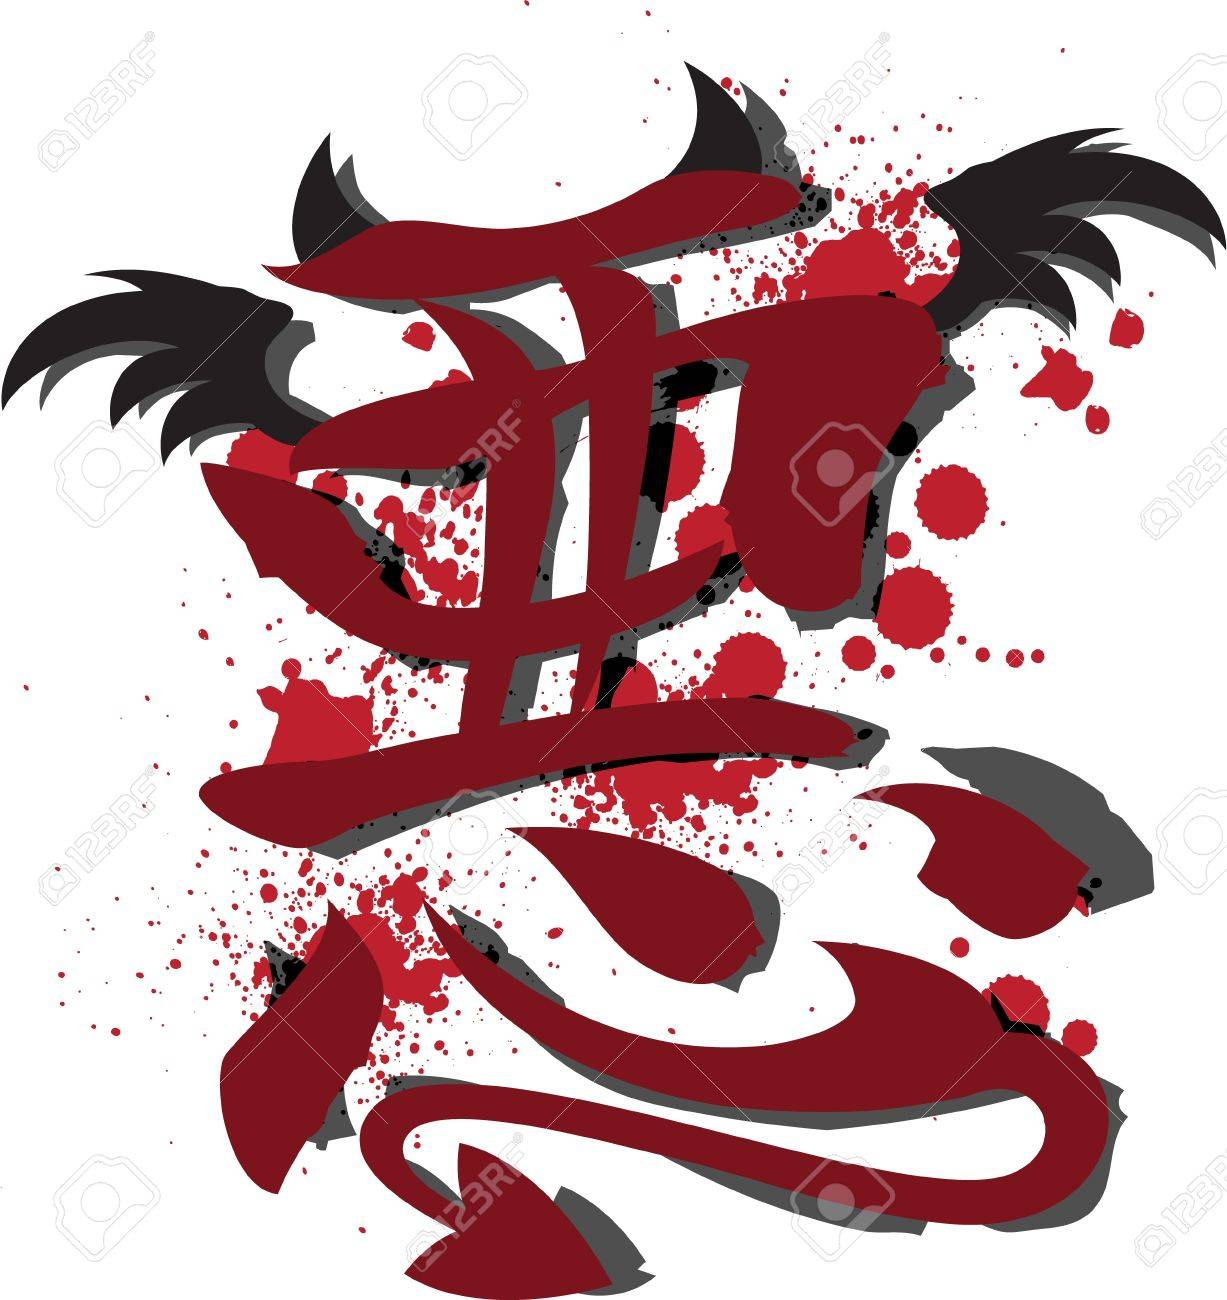 the japanese kanji symbol for evil the symbol itself has been